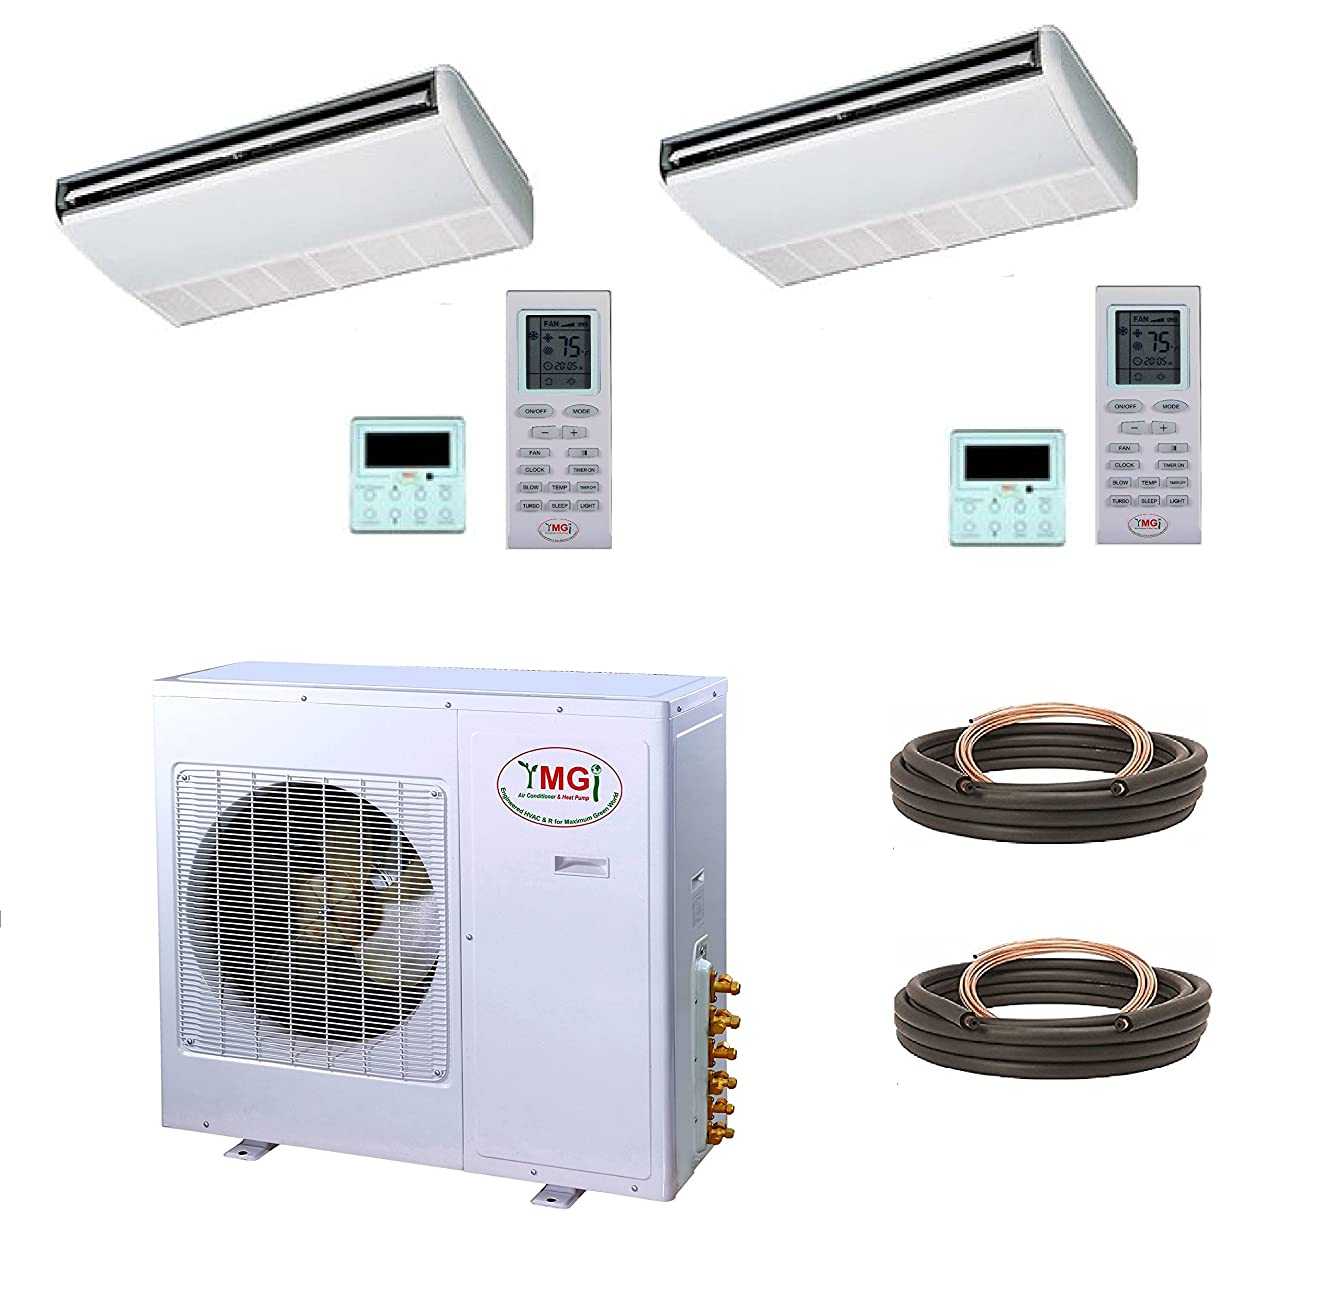 YMGI Dual Zone - 36000 BTU 3 Ton 21 SEER Ceiling Suspension Ductless Mini Split Air Conditioner with Heat Pump for Home, Office, Apartment with 25 Ft Lineset installation Kits